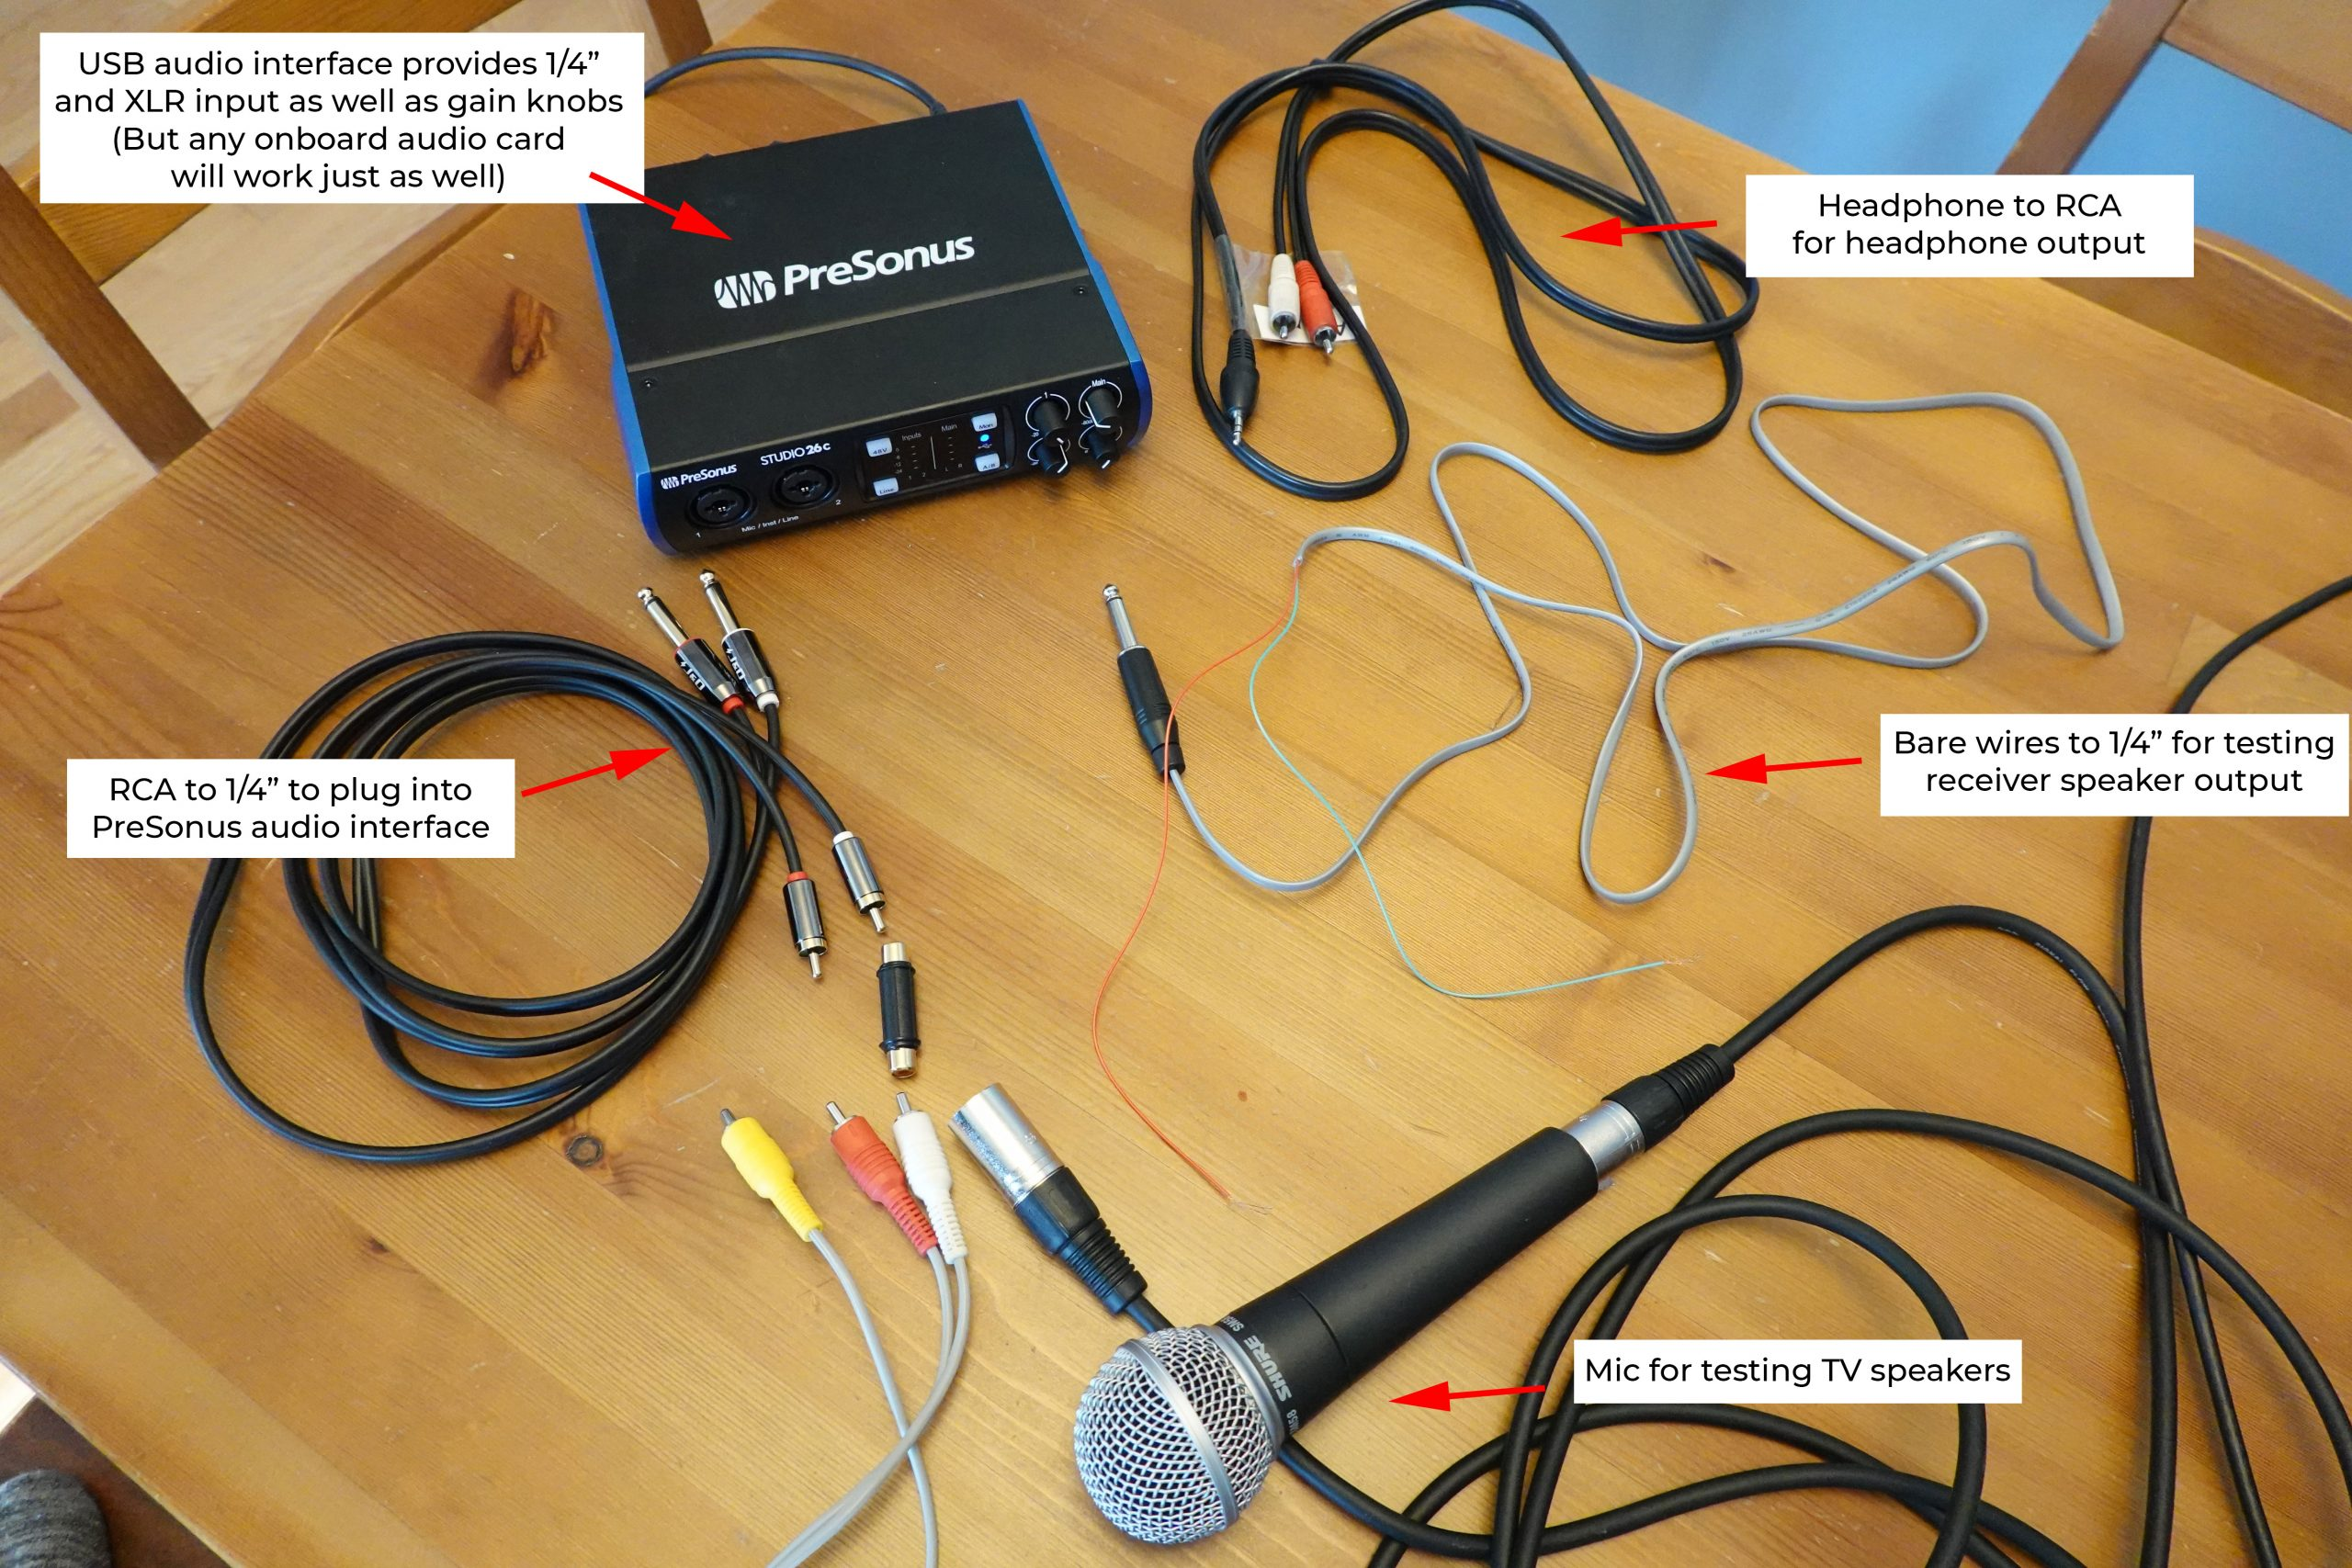 Various cables that can be useful when measuring audio input lag